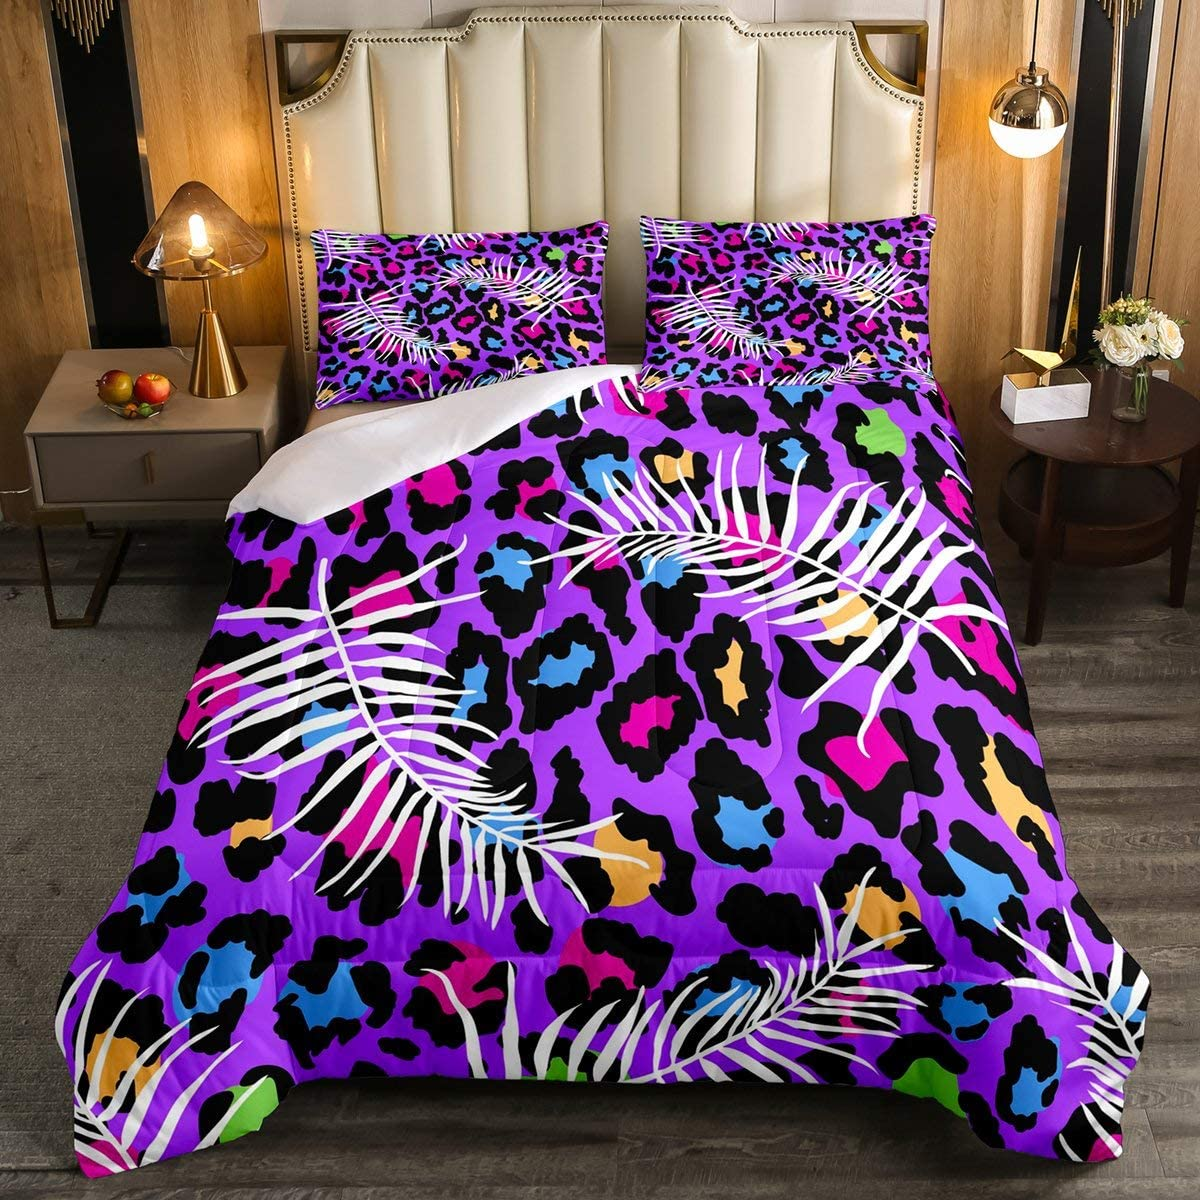 Erosebridal SEAL limited product Leopard Print Special Campaign Man DownComforter Full Size Lea Palm